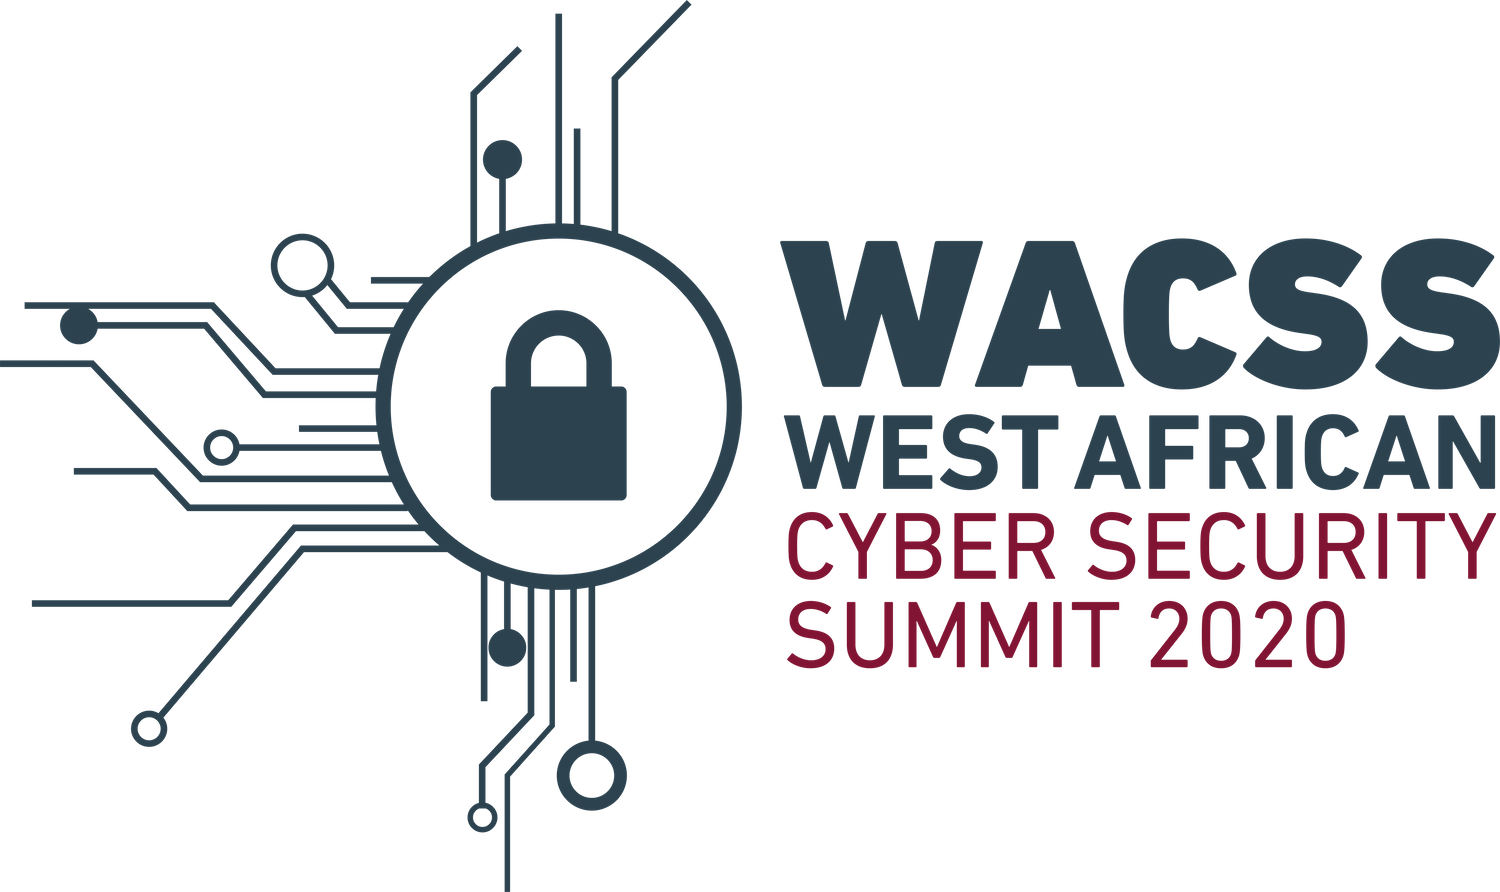 'Building Sustainable Defence through Information Security' will be this year's theme for the West African Cyber Security Summit (WACSS)